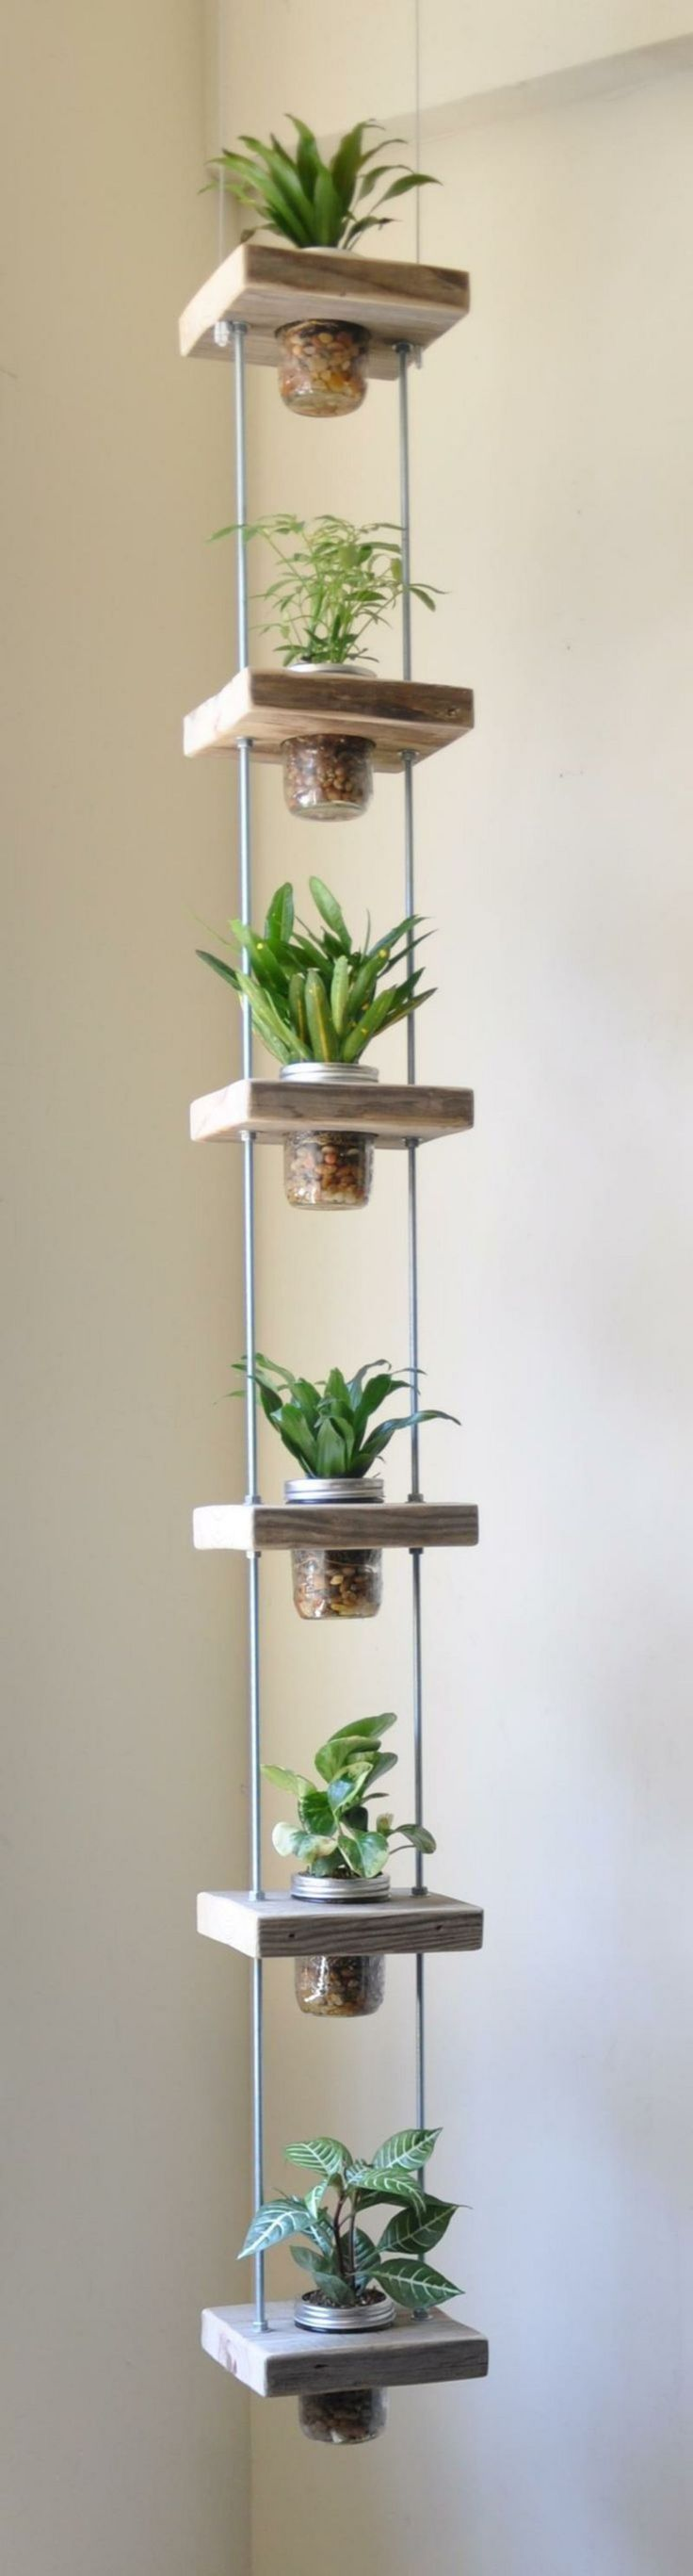 20 Amazing Vertical Garden Ideas to Beautify Your Home